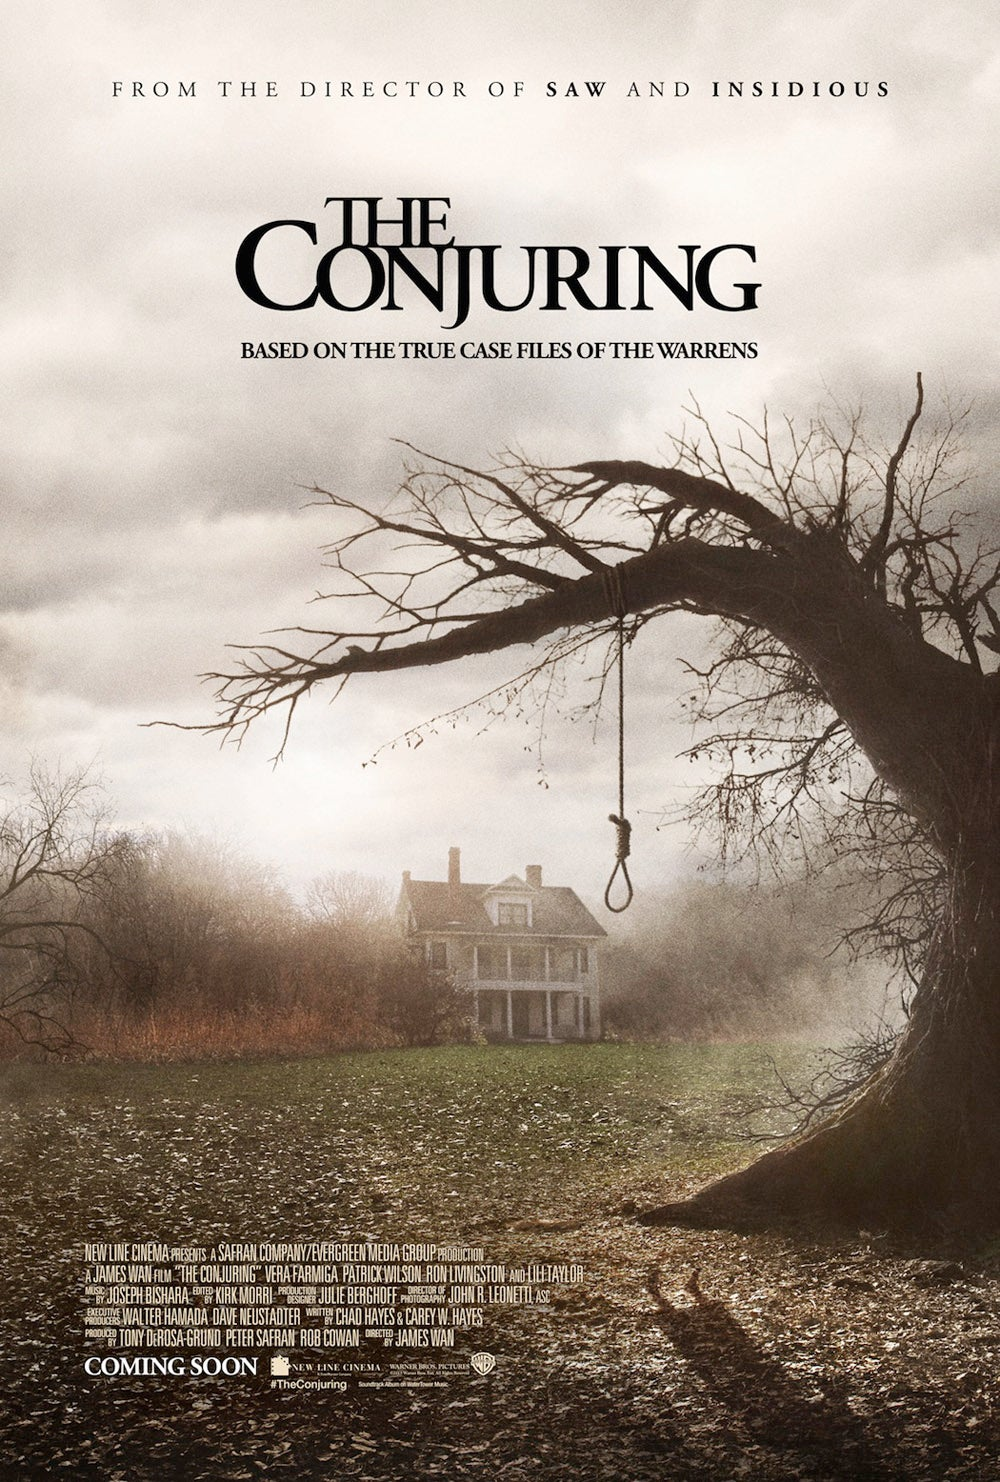 https://i0.wp.com/media.comicbook.com/wp-content/uploads/2013/07/the-conjuring-poster.jpg